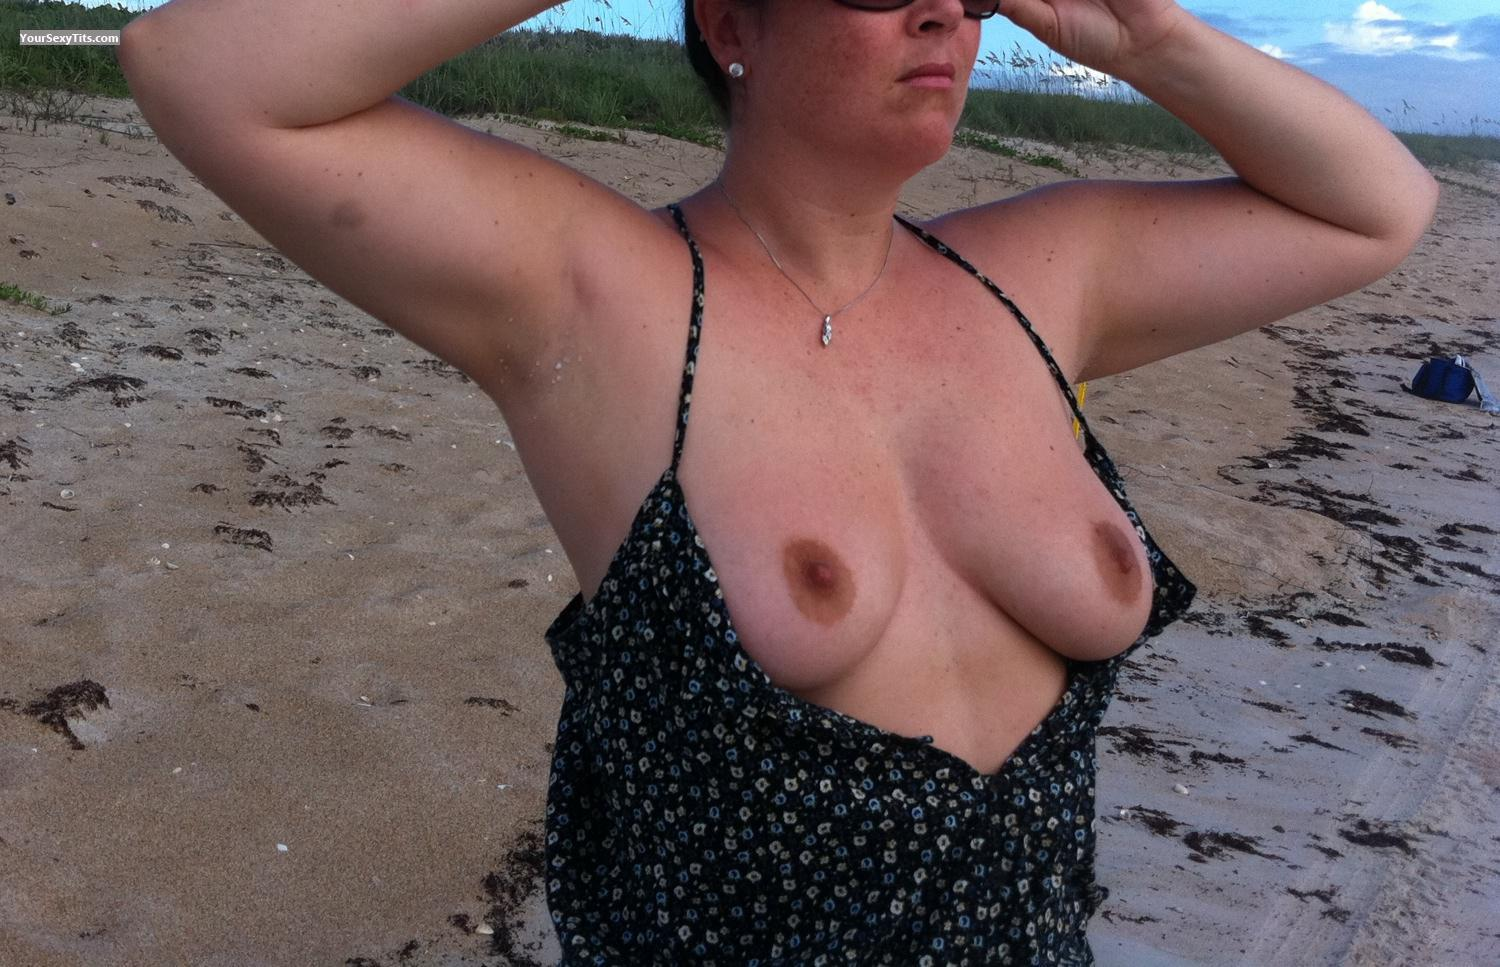 Tit Flash: Big Tits By IPhone - Lgk from United States